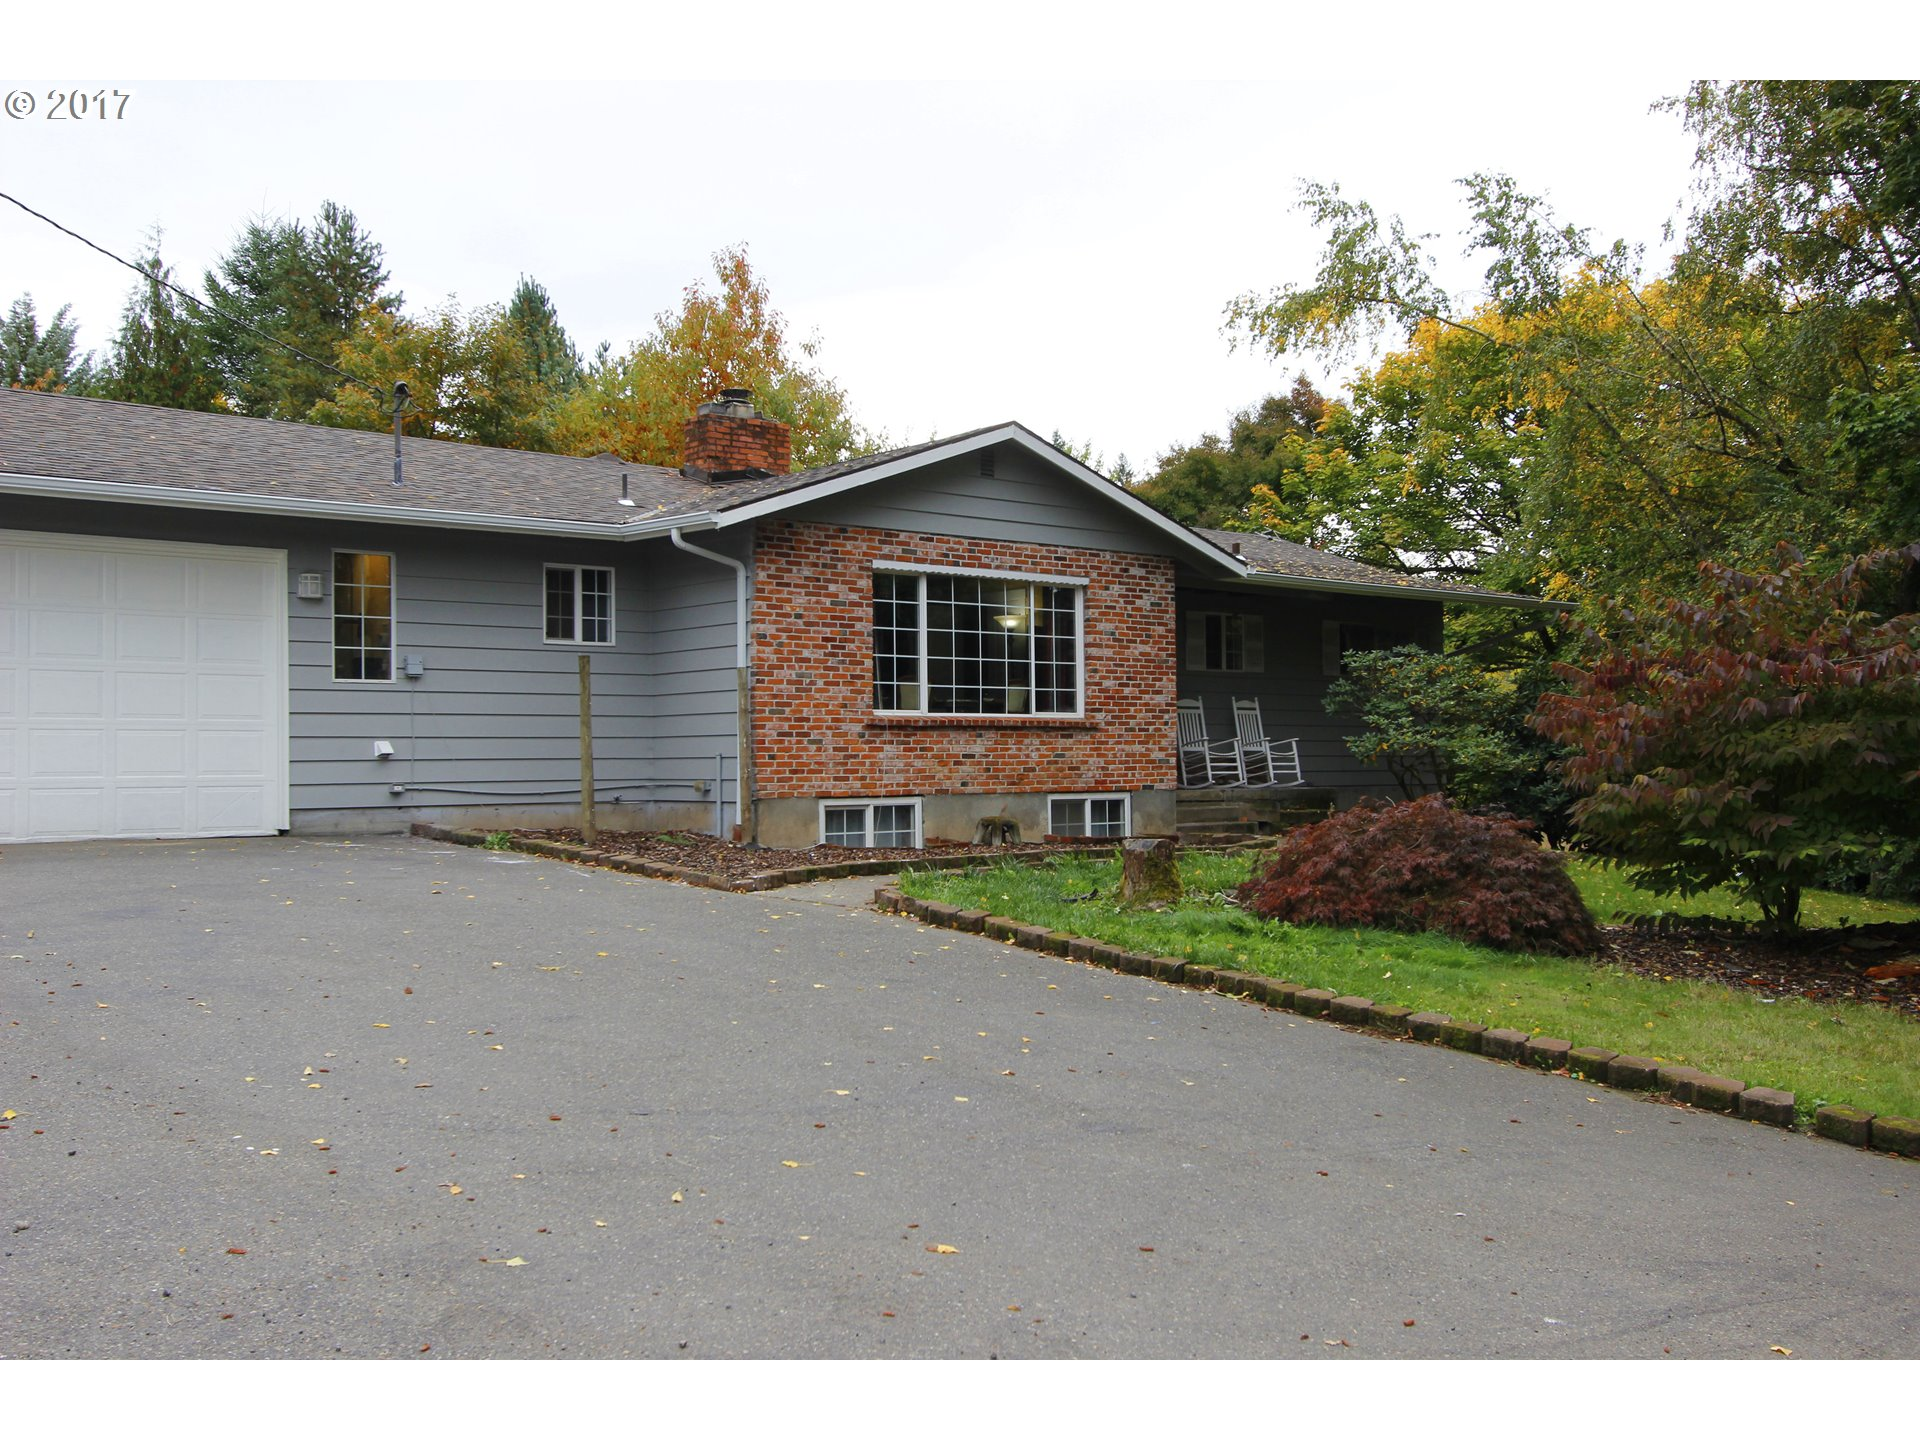 19412 S HENRICI RD, Oregon City OR 97045